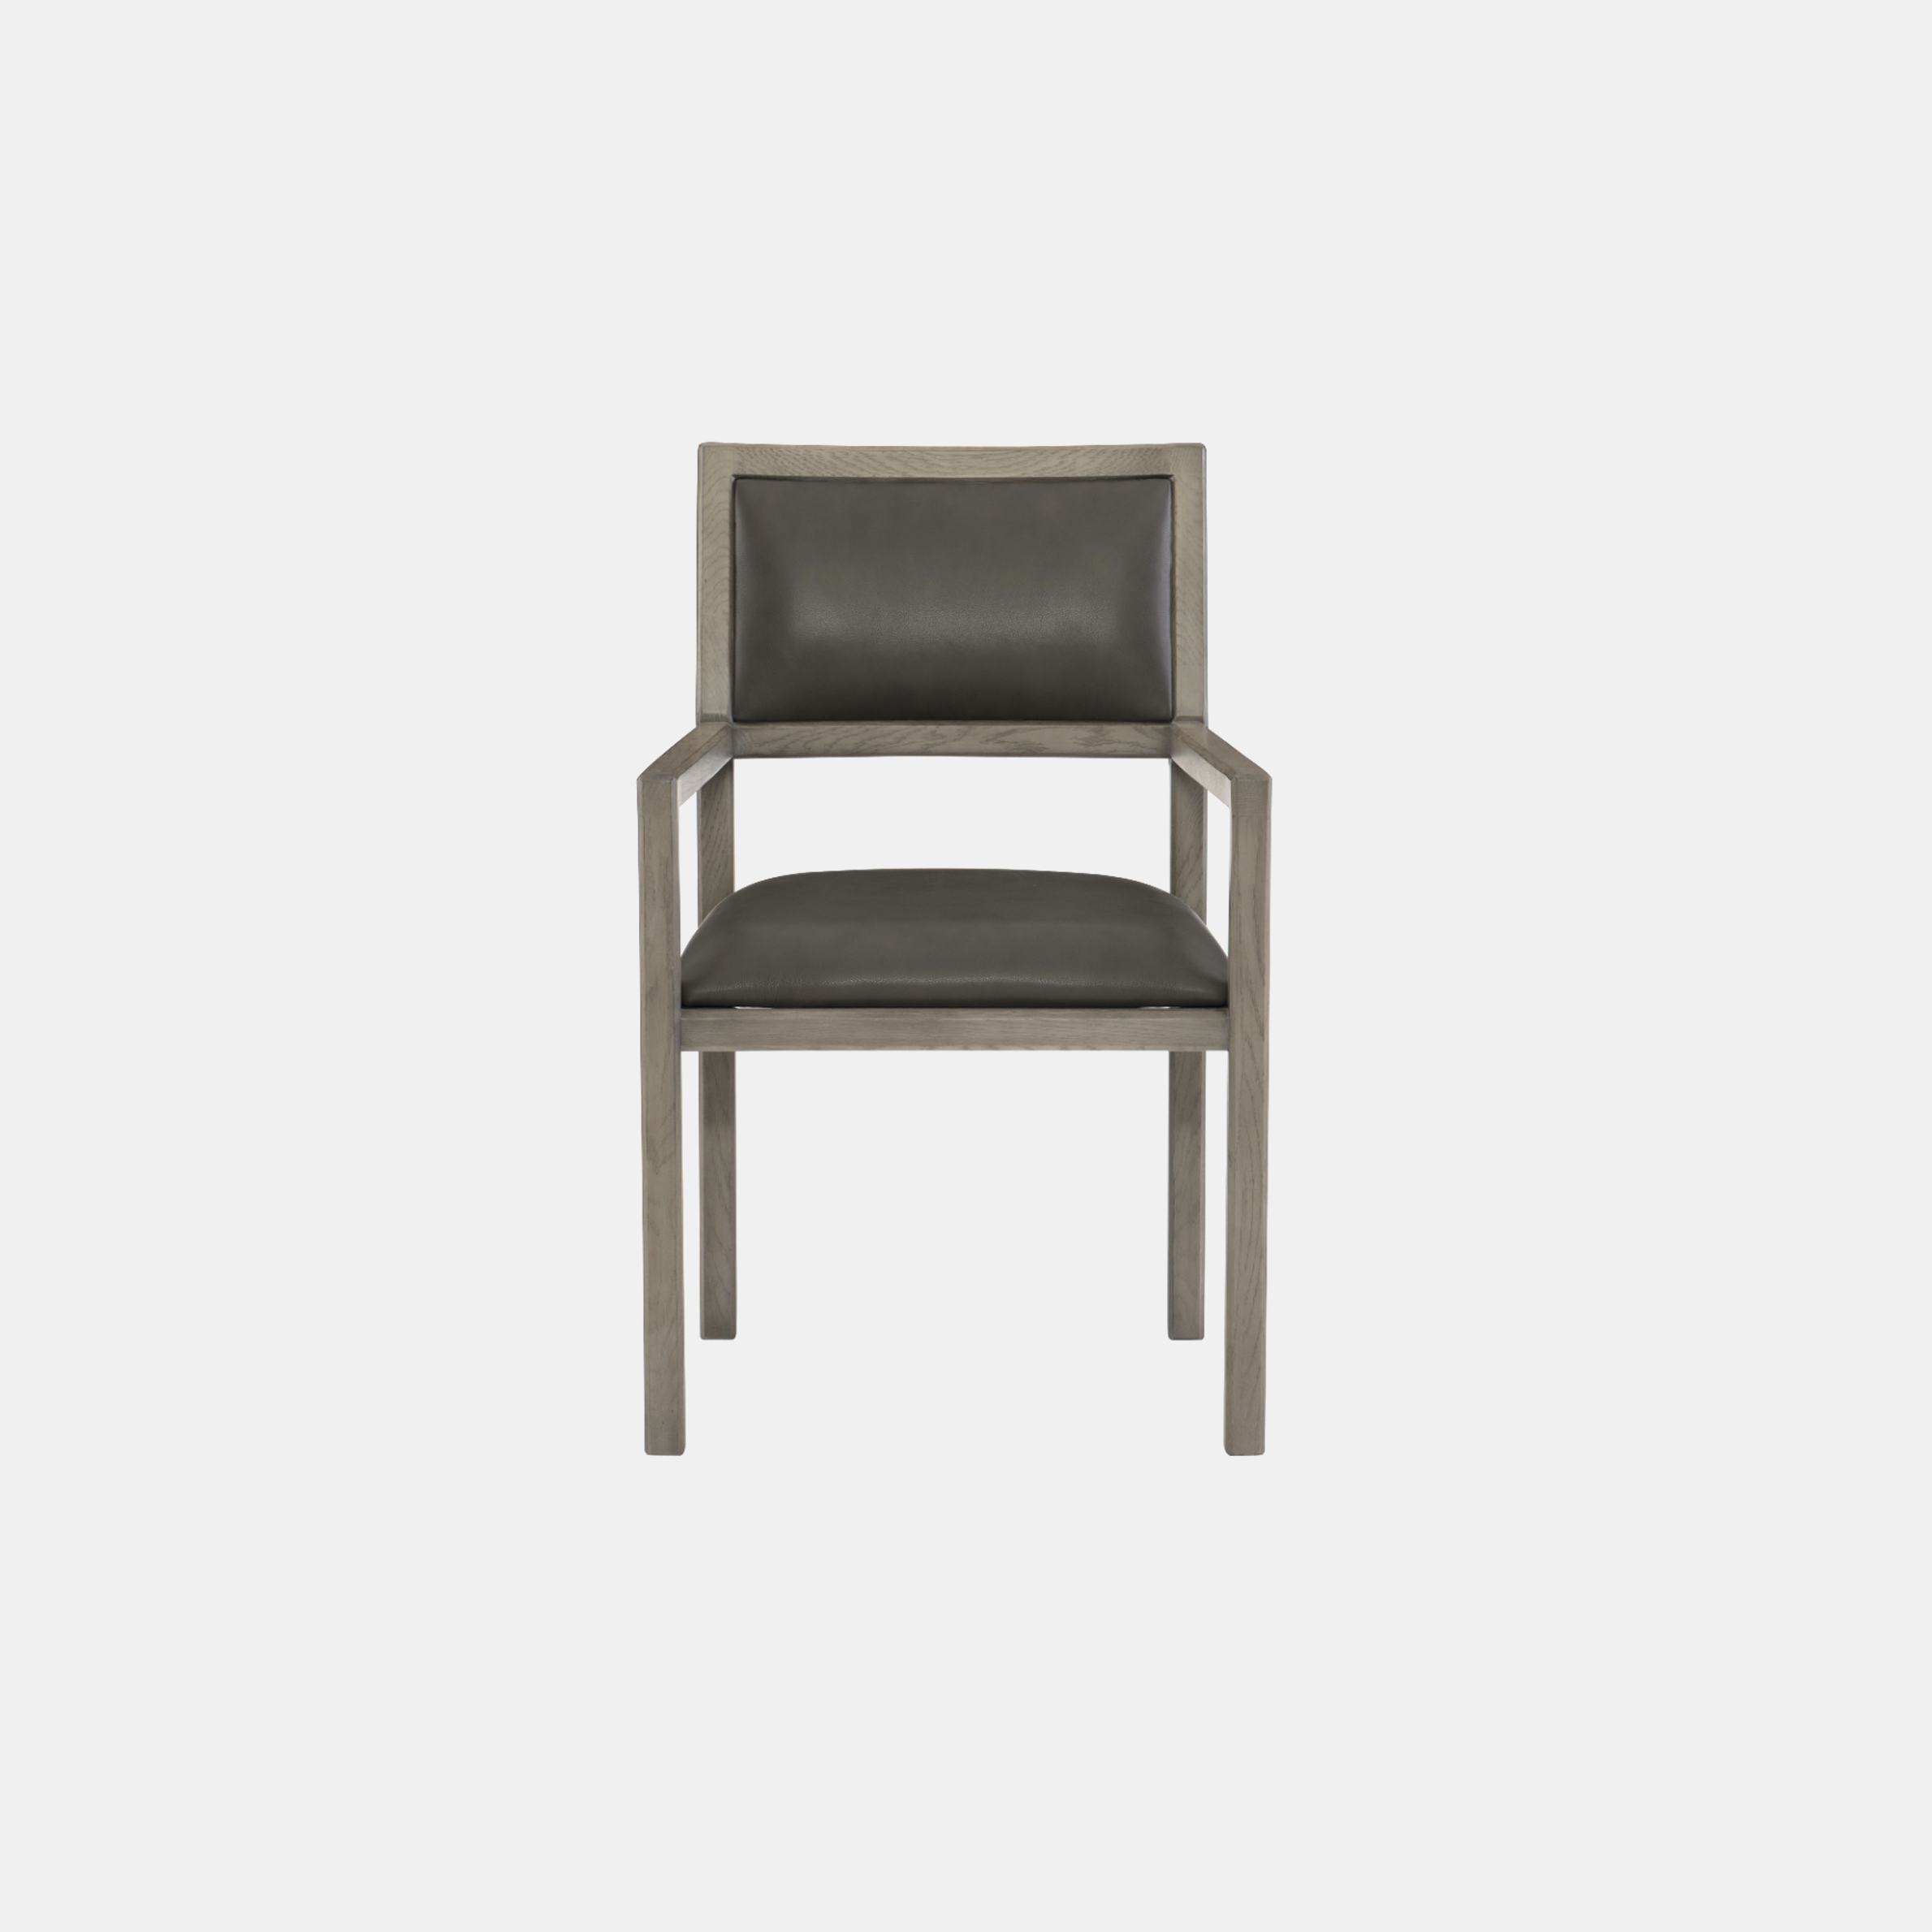 "Mitcham Chair  23""w x 23-5/8""d x 36-1/4""h Available in fabric, leather, and COM. SKU0184BHT"